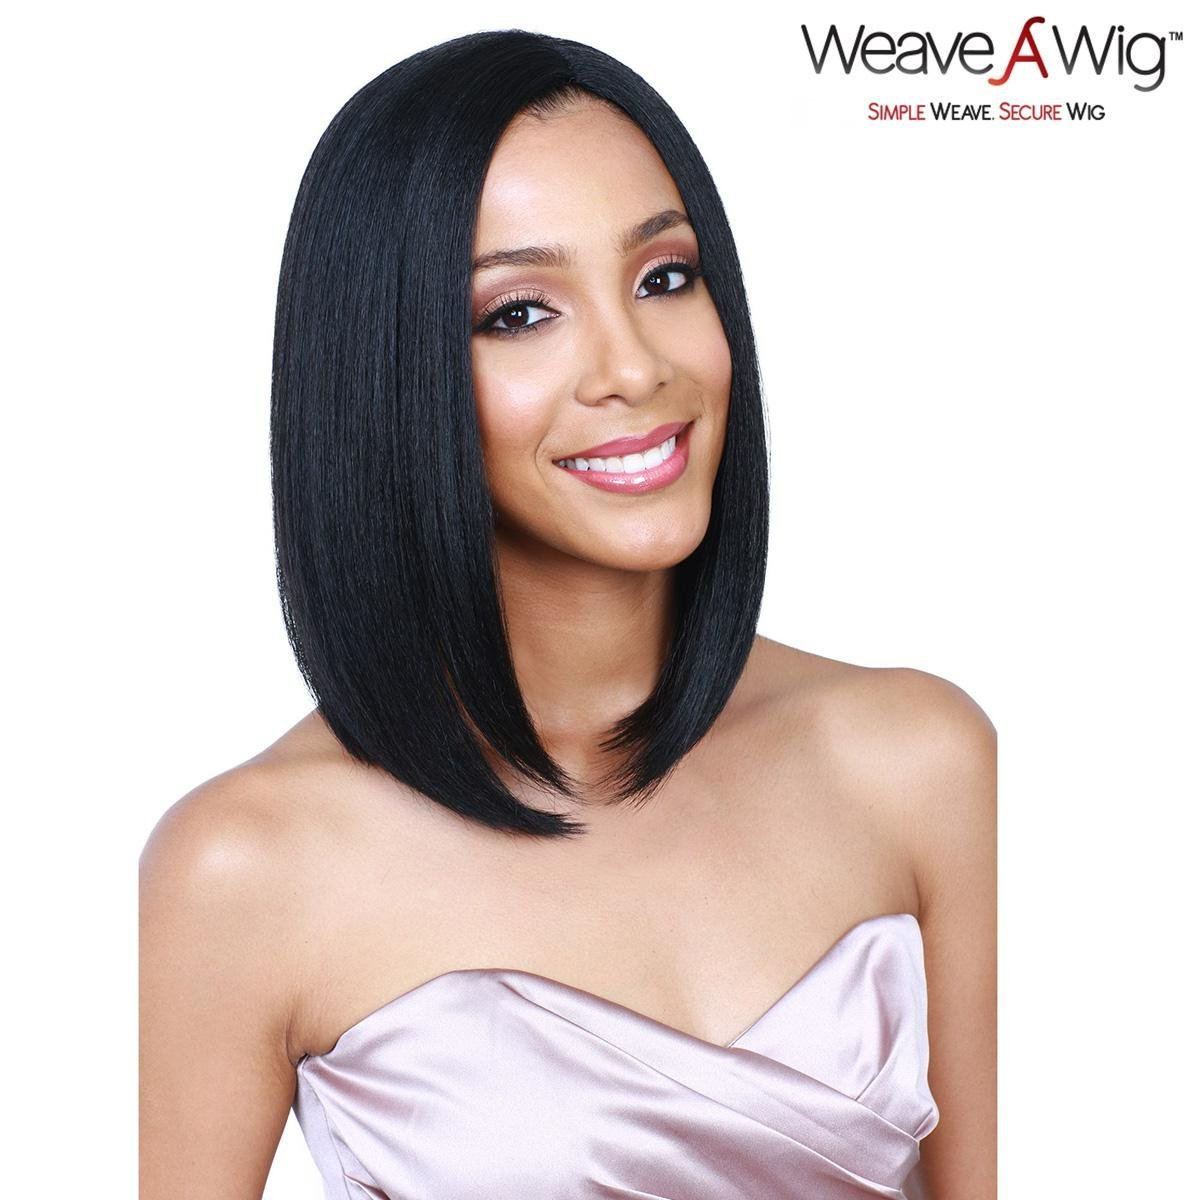 Cheap Weave Synthetic Hair Find Weave Synthetic Hair Deals On Line